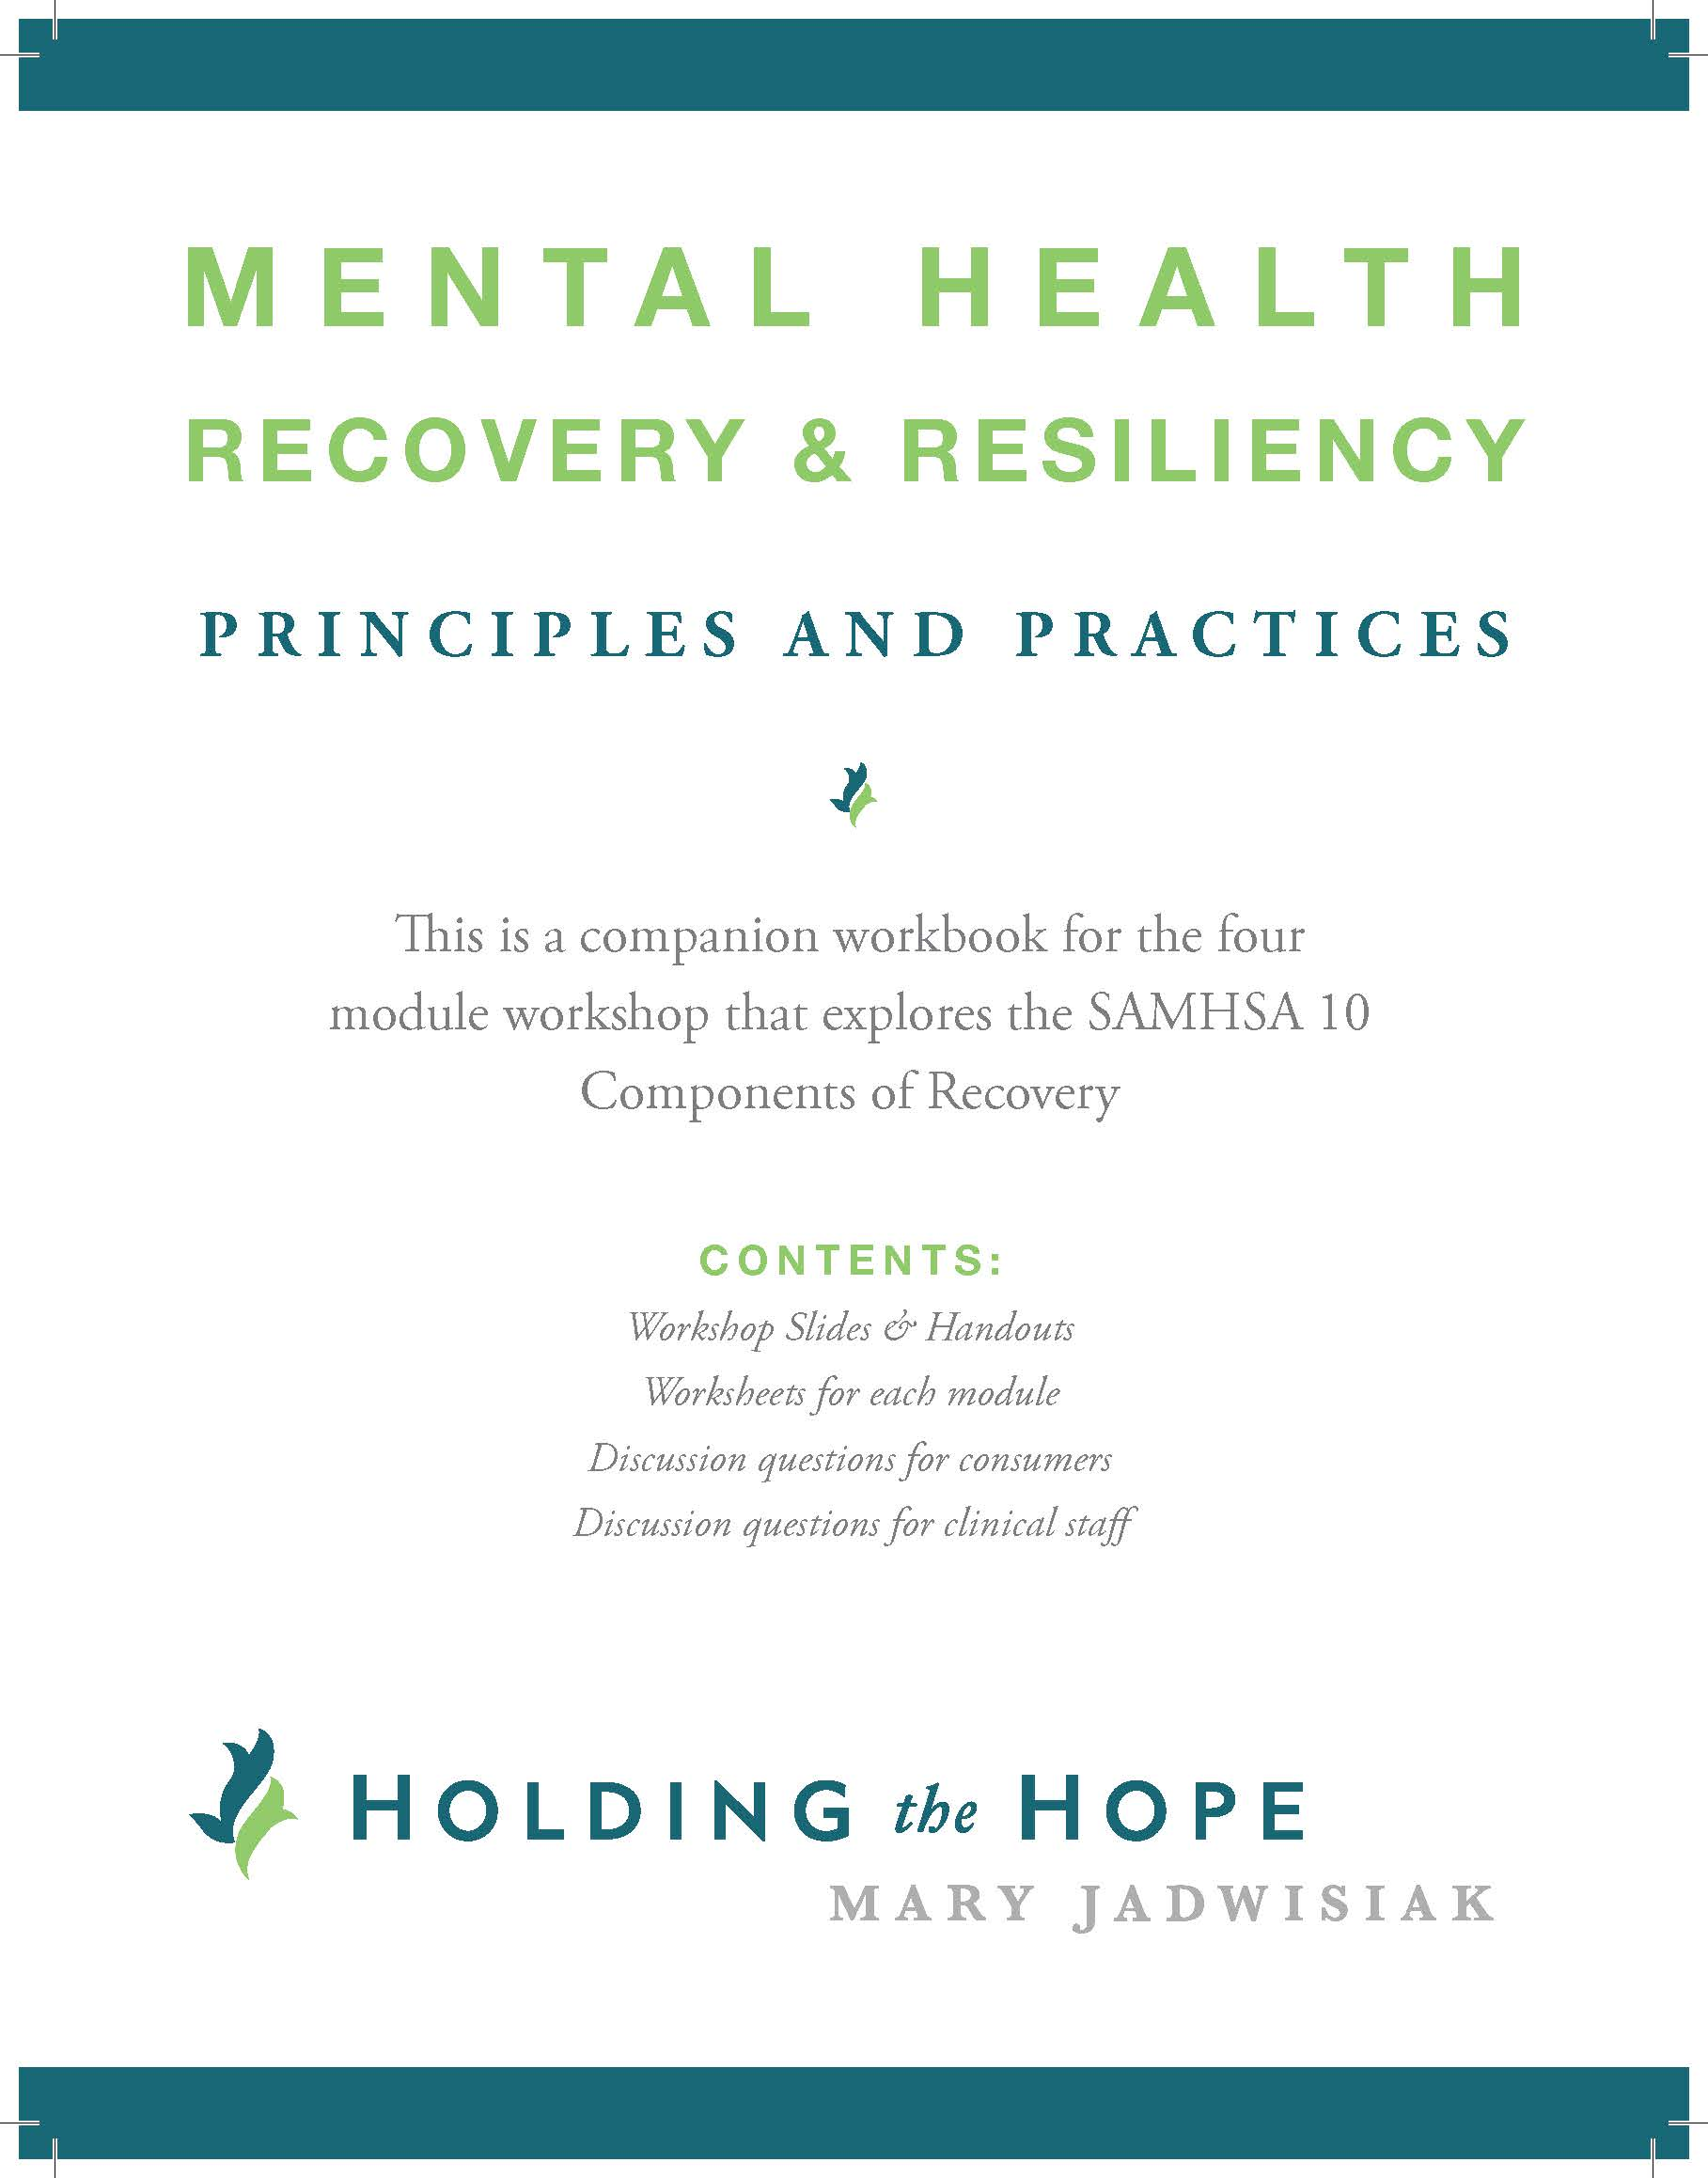 Mh Recovery Amp Resiliency Principles And Practices Workbook